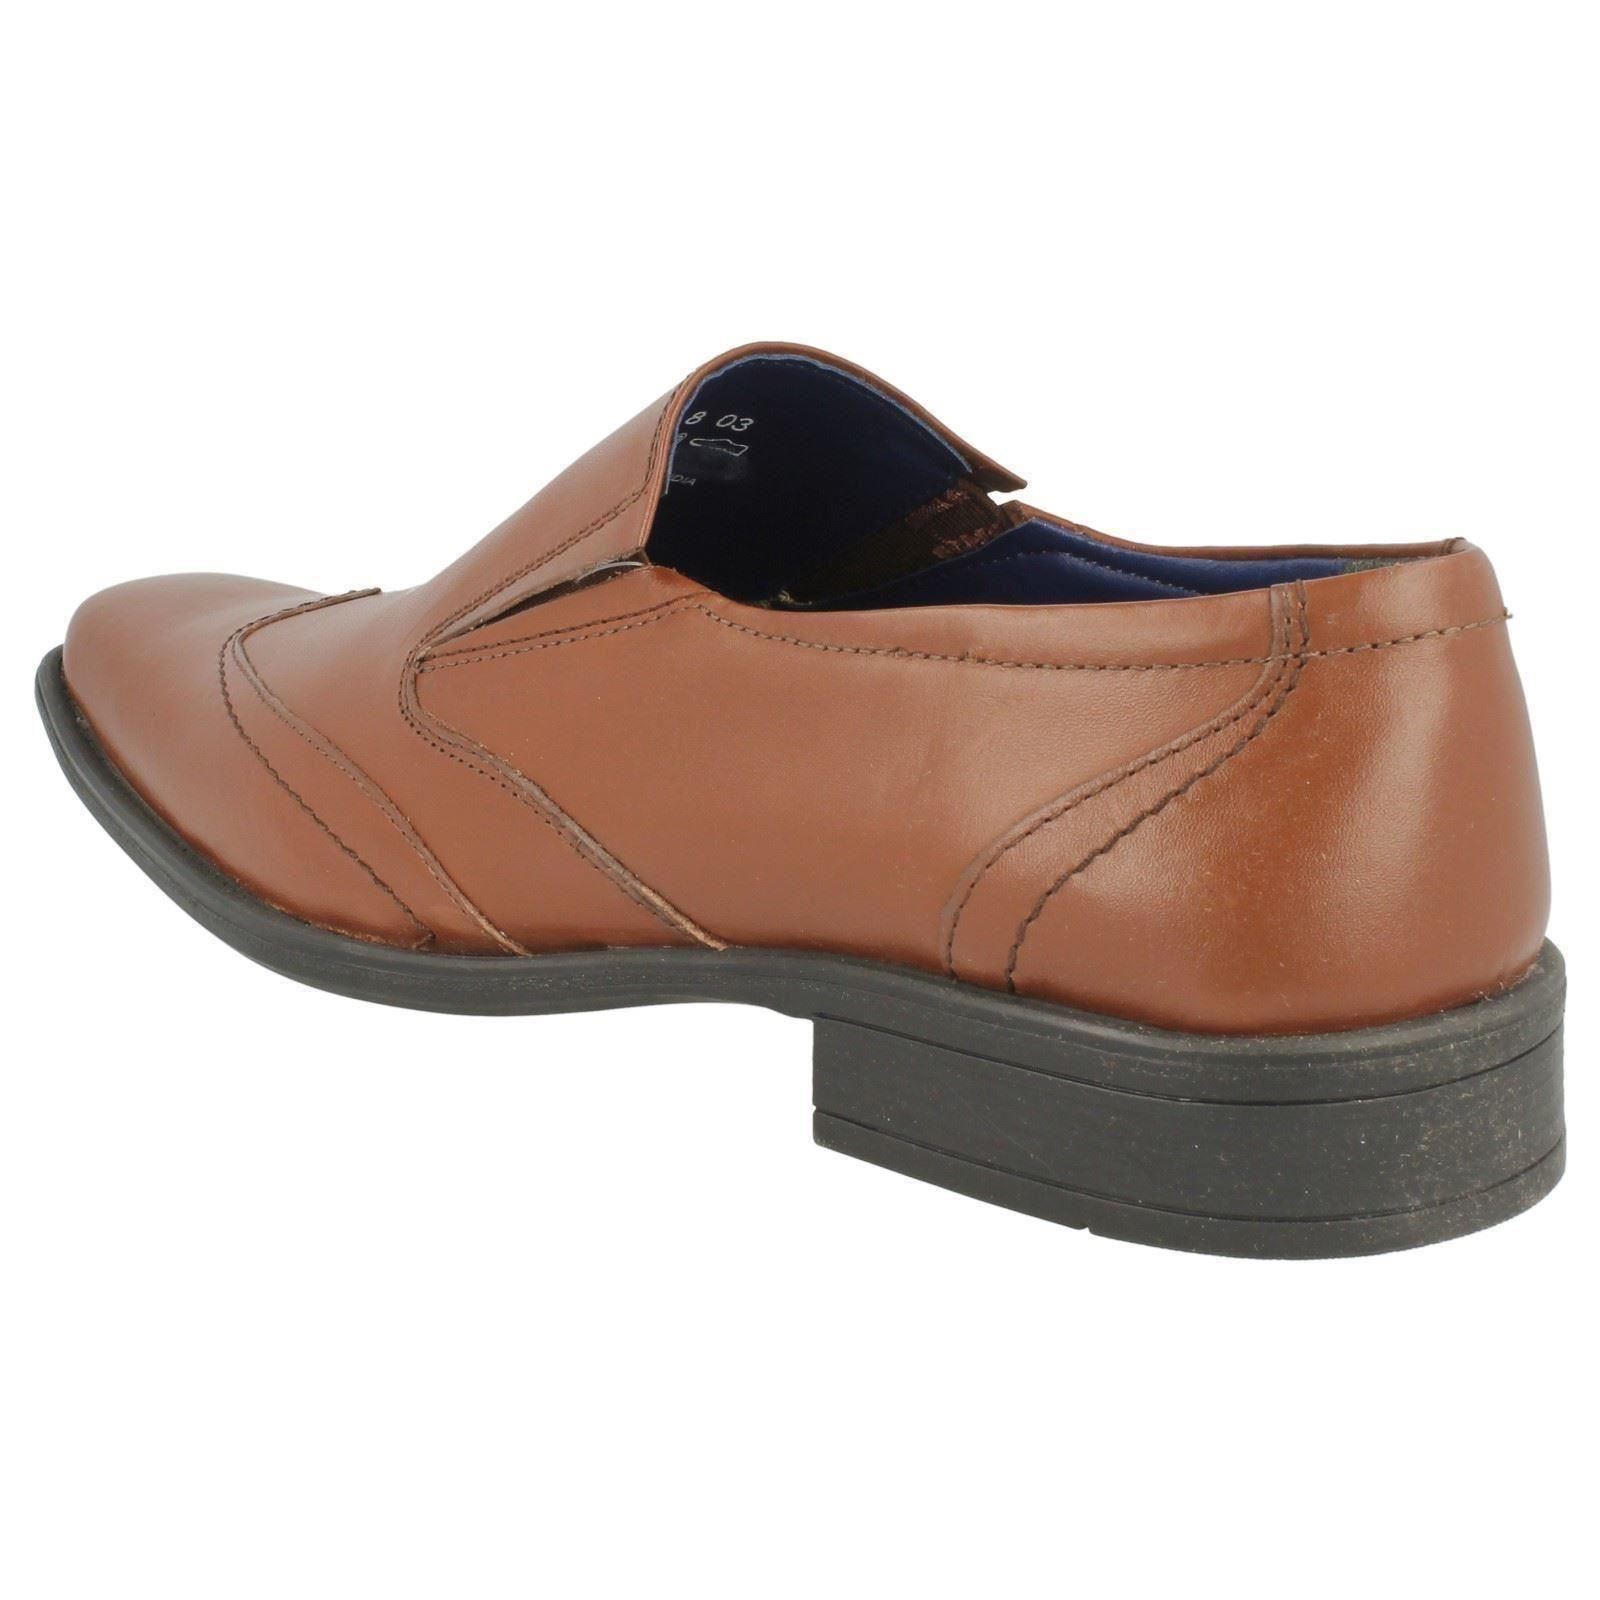 Herren Bruno donnari Leather STYLISCH Slip On Schuhe